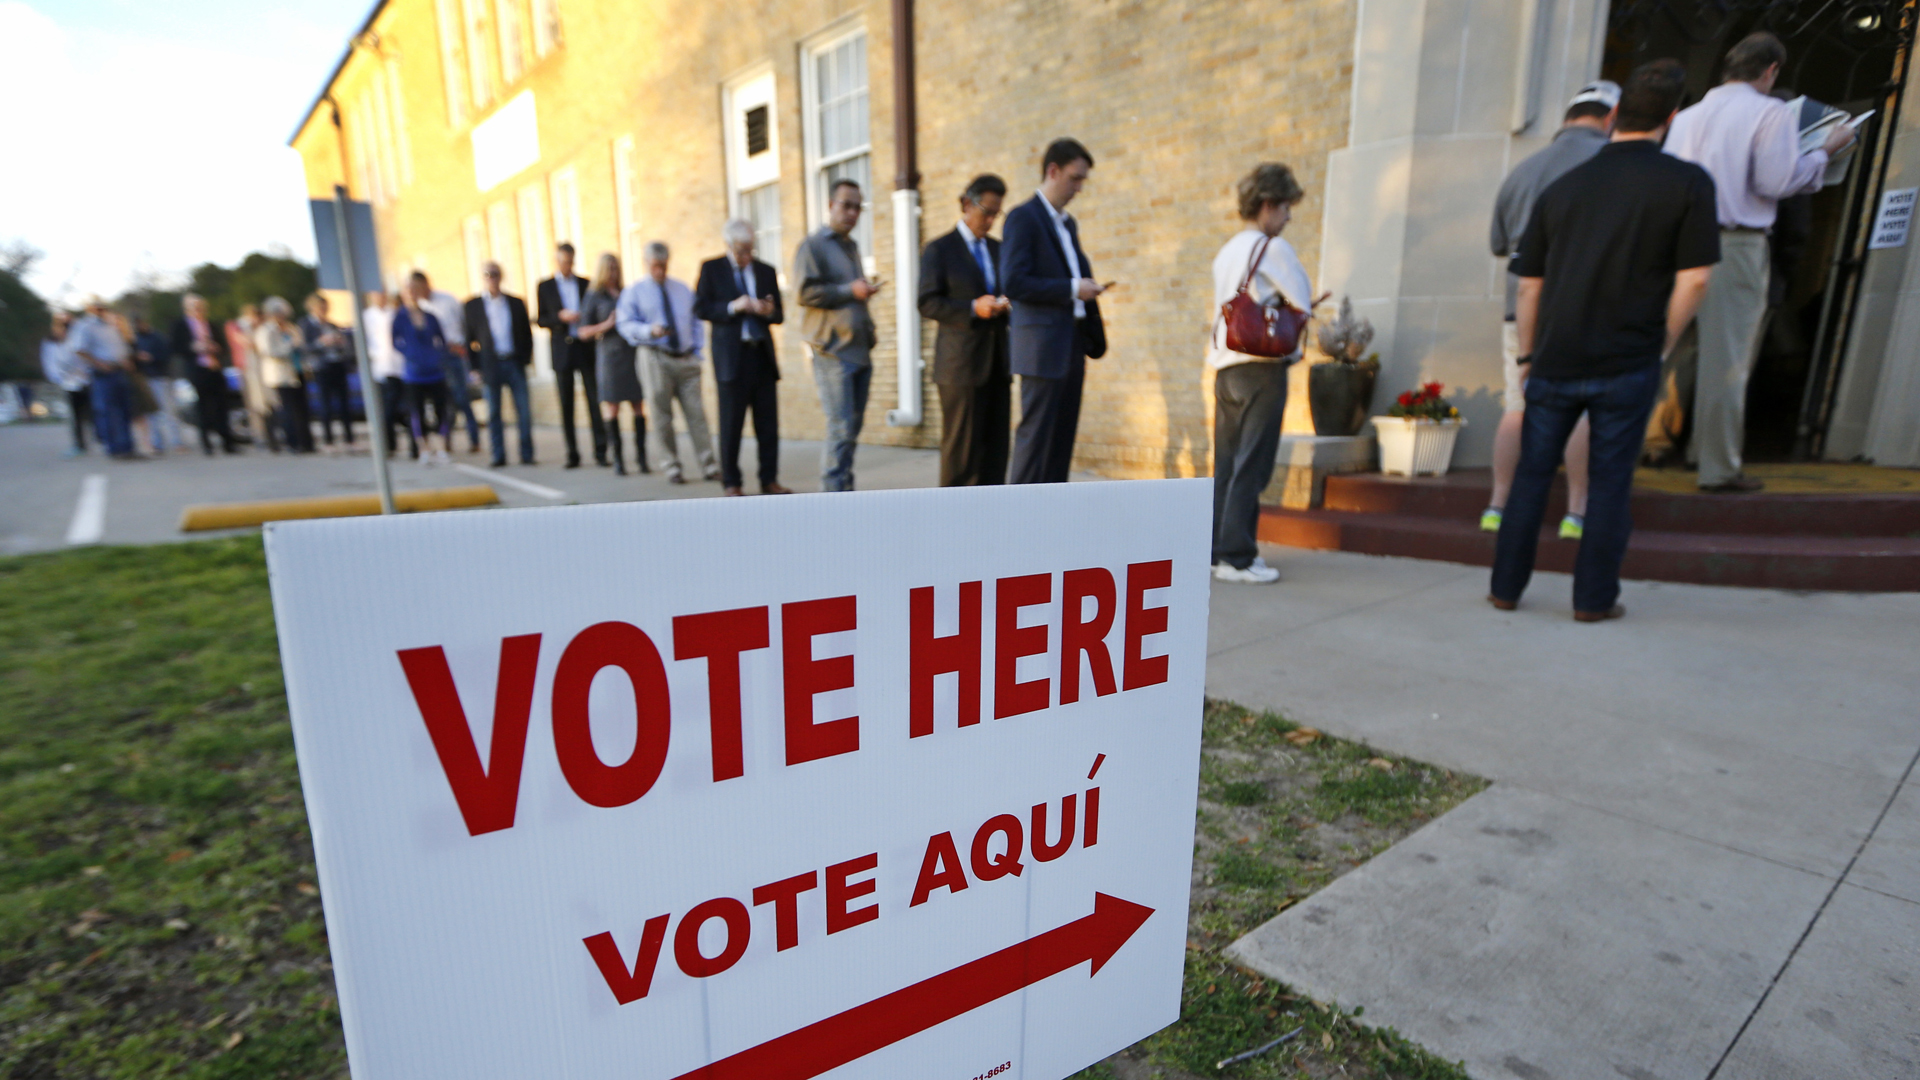 Voters line up to cast their ballots on Super Tuesday March 1, 2016 in Fort Worth, Texas. (Credit: Jenkins/Getty Images)